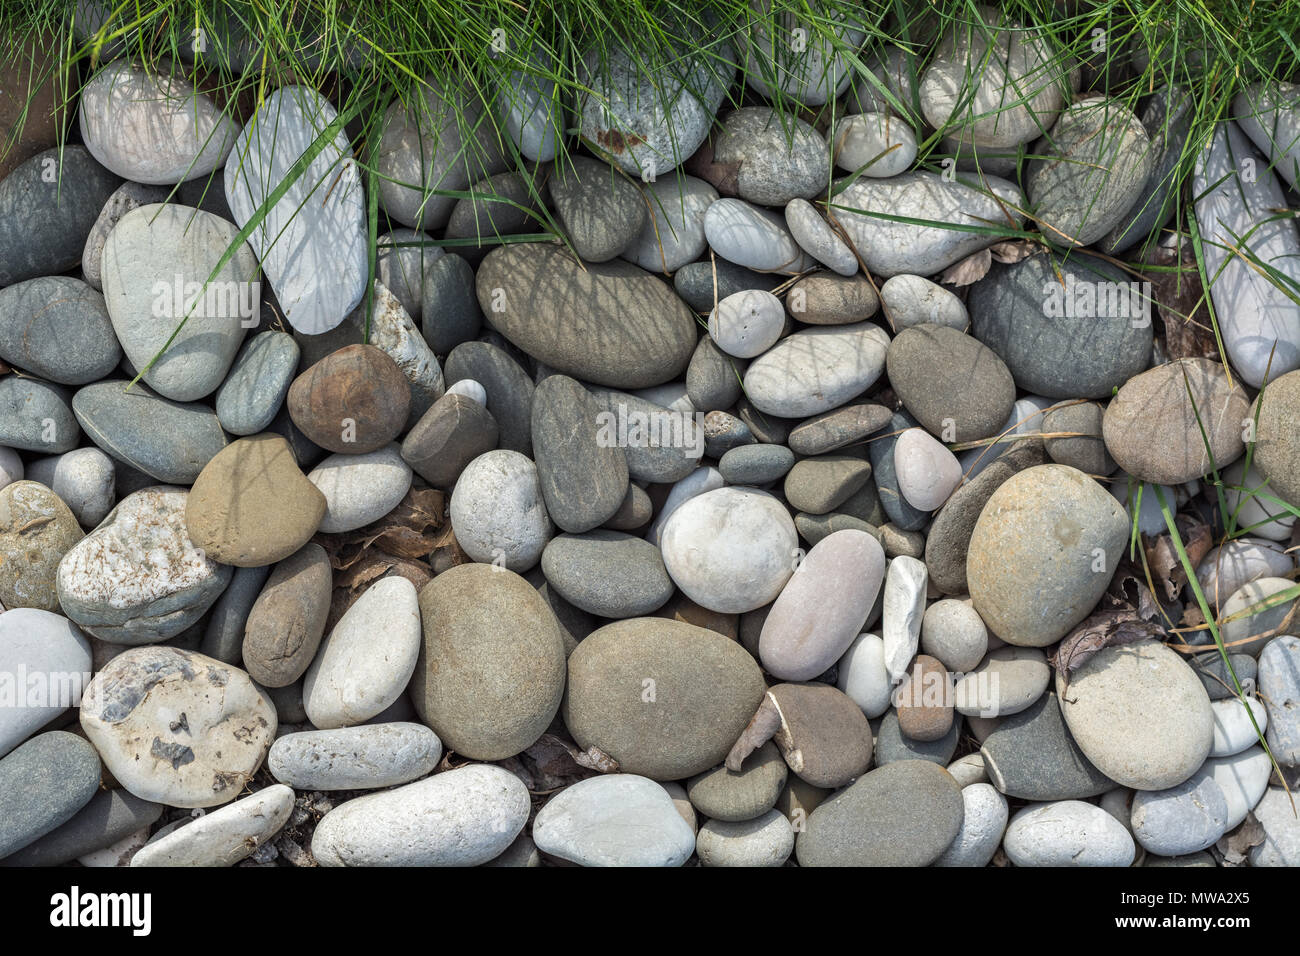 The image of river pebbles of various shapes and sizes with green grass from above, for use as a background. - Stock Image